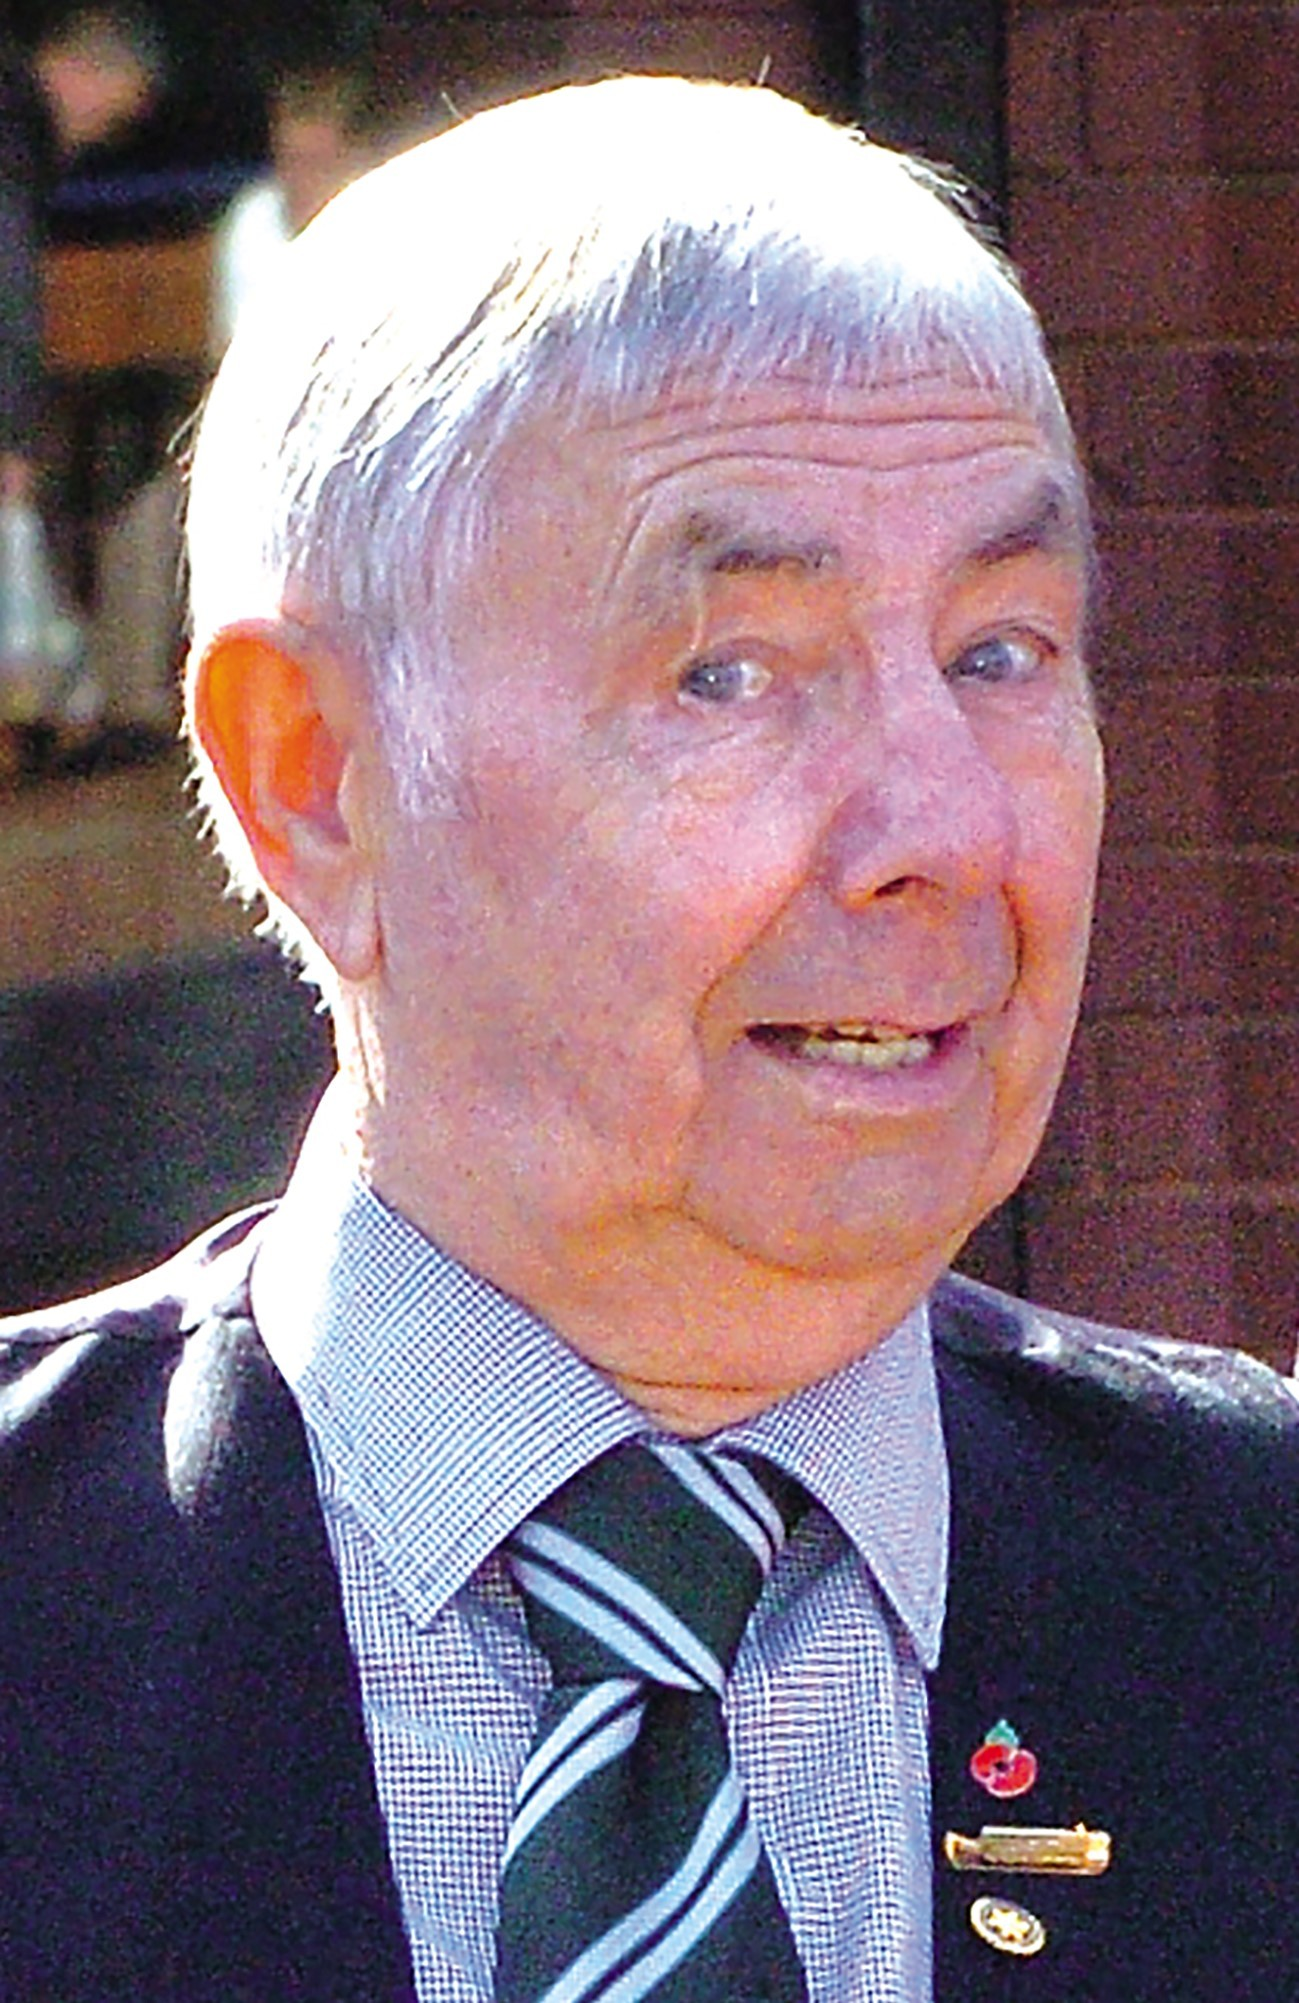 Tommy Mundon who died on July 21 aged 80